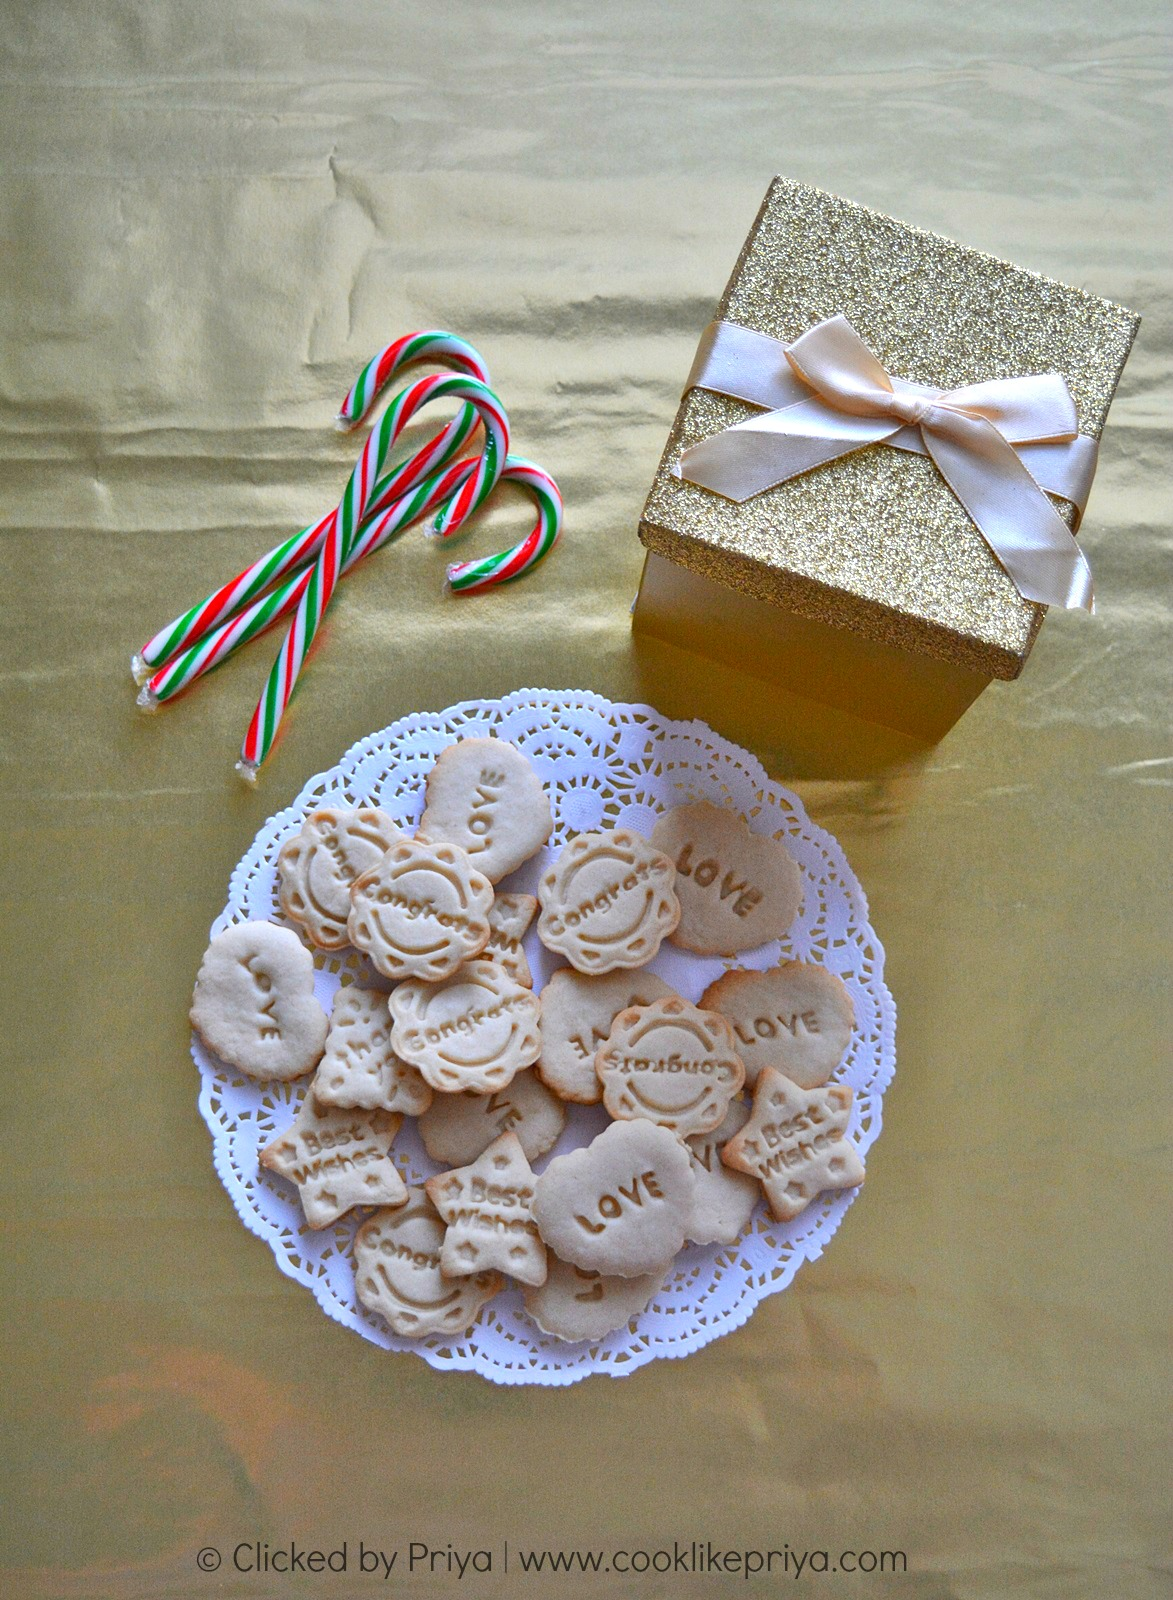 Eggless Sugar Cookies Recipe